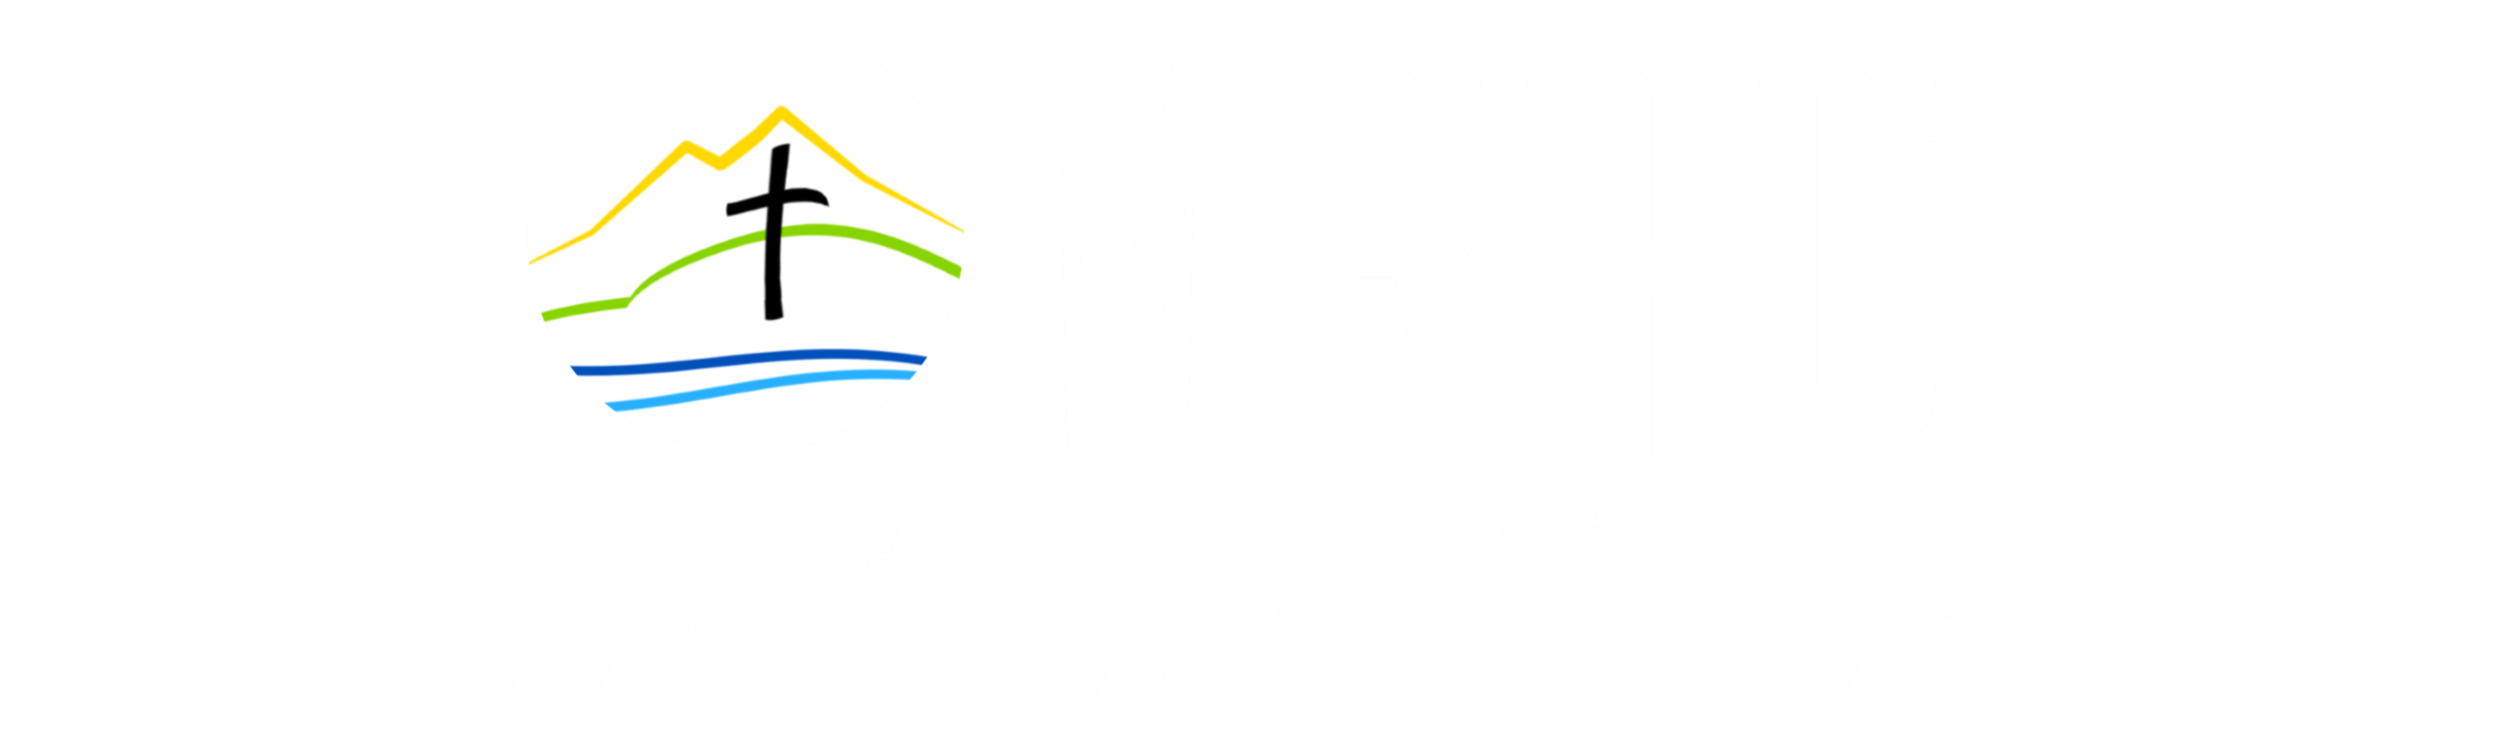 MRAC in transition padded.png